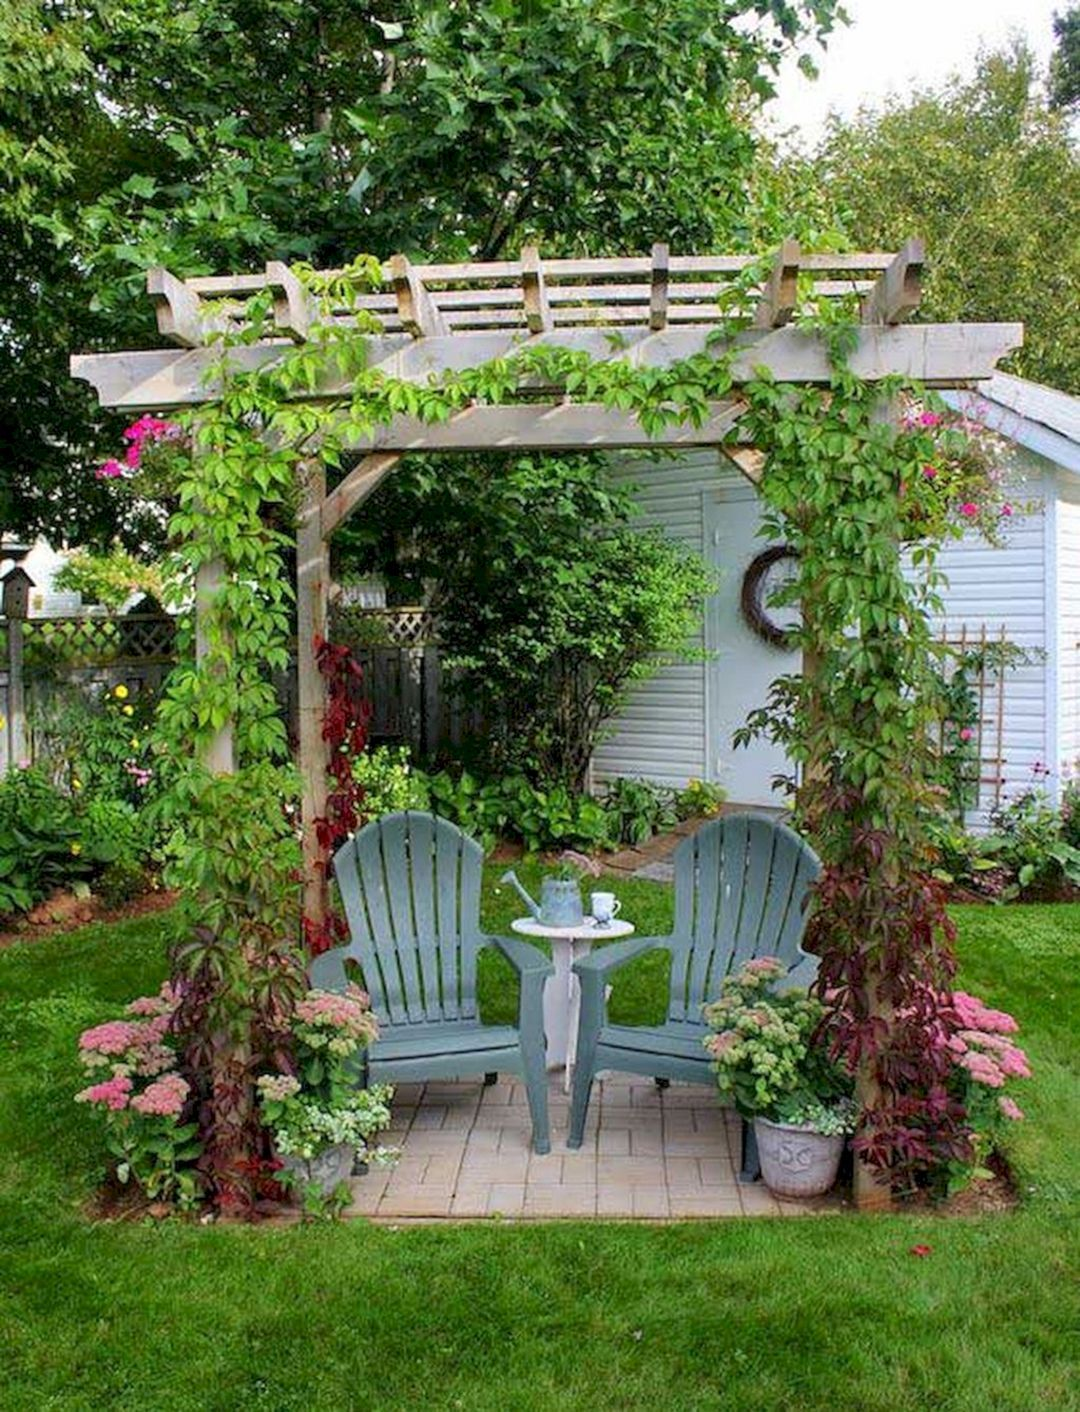 80 Super Cool Backyards Design For Your Perfect Home Garden Small